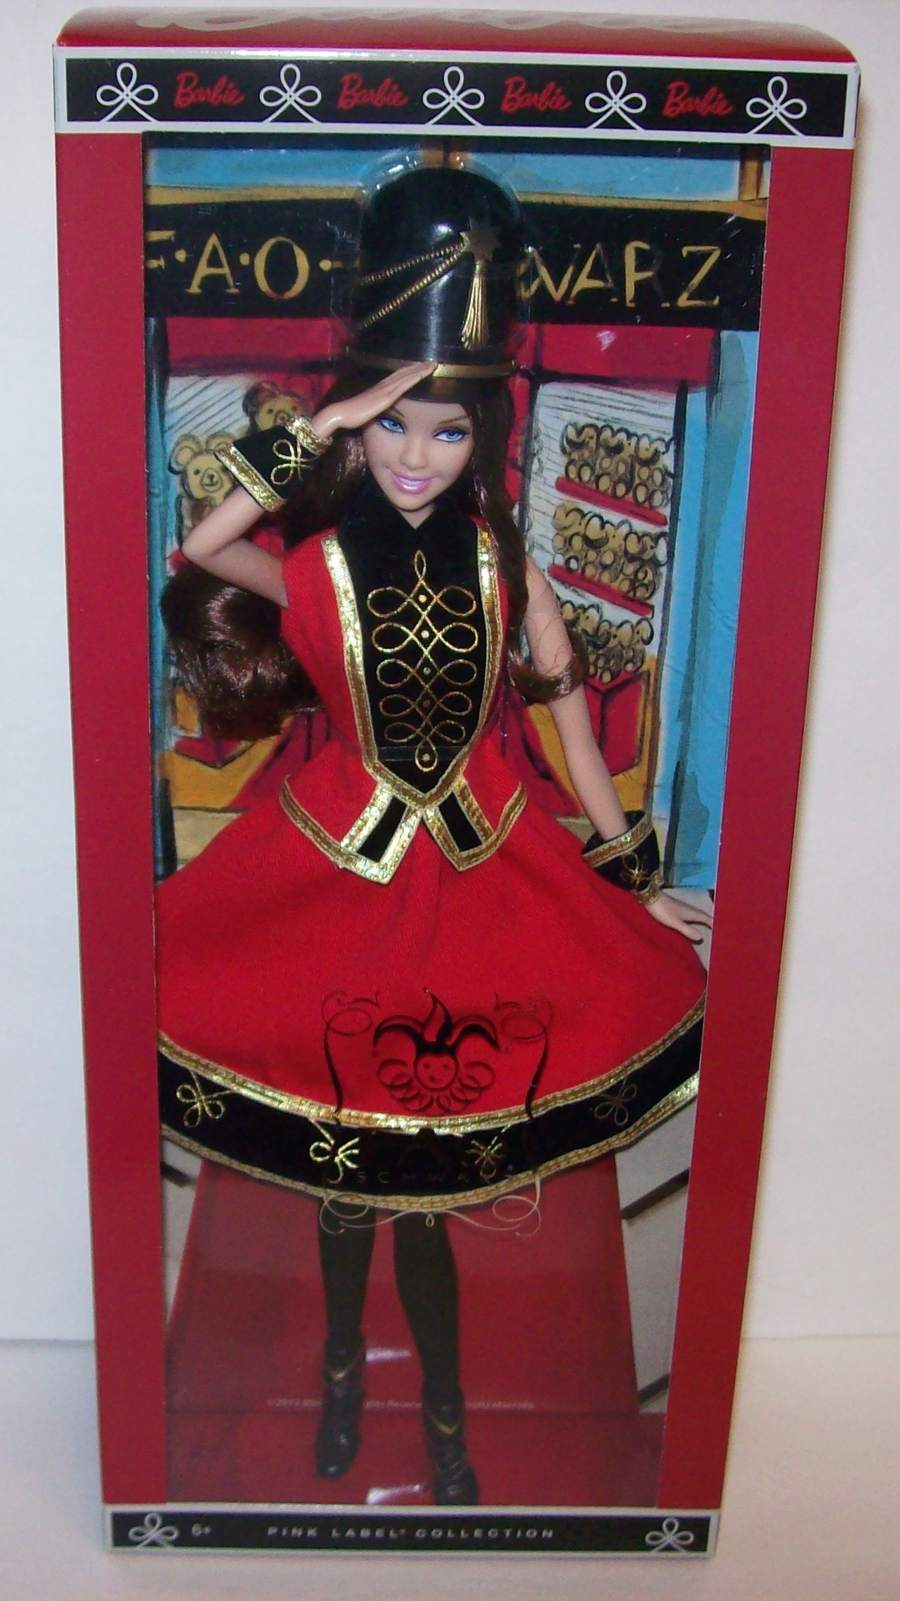 FAO Schwarz 150th Anniversary Barbie Soldier Doll Mattel 2012 NEW Ready to Ship!